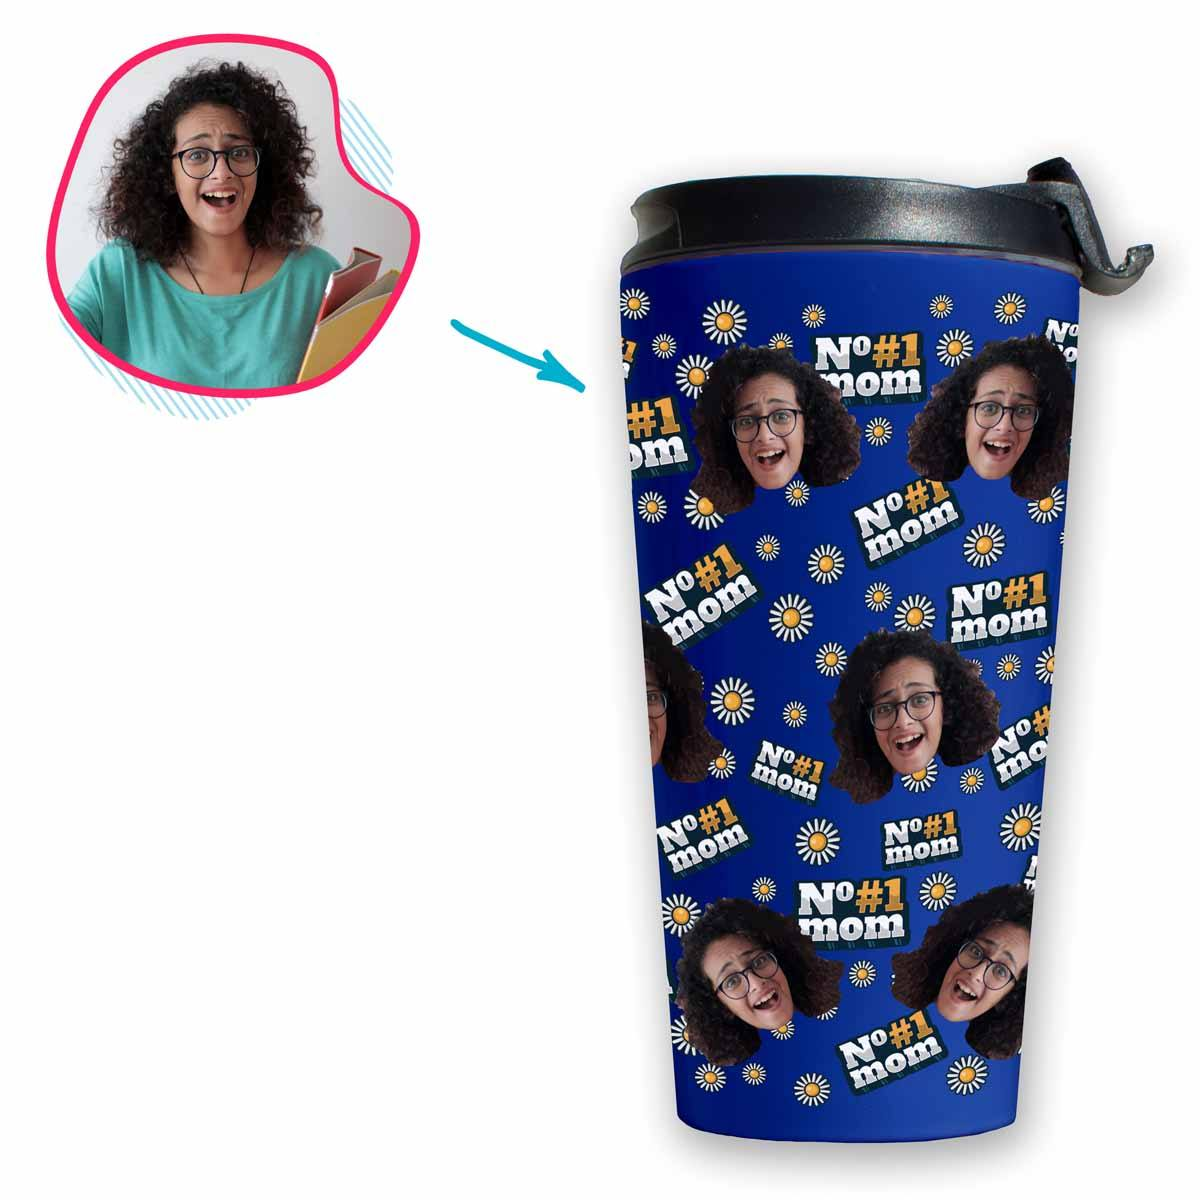 darkblue #1 Mom travel mug personalized with photo of face printed on it